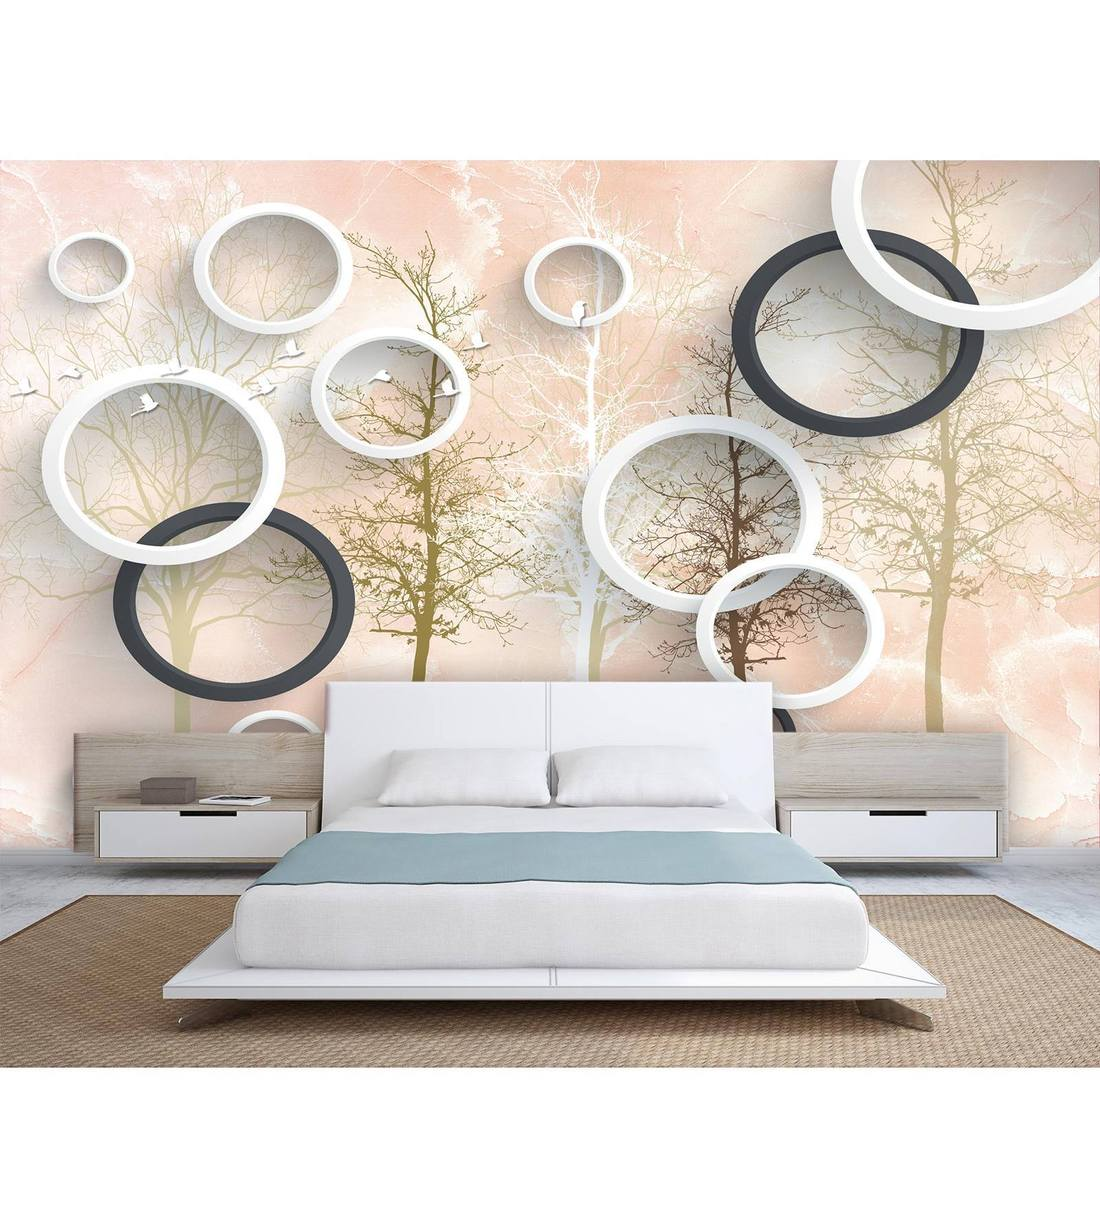 The forest wallpaper (bosbehang) allows you to appreciate an image with the quality of a professional painter